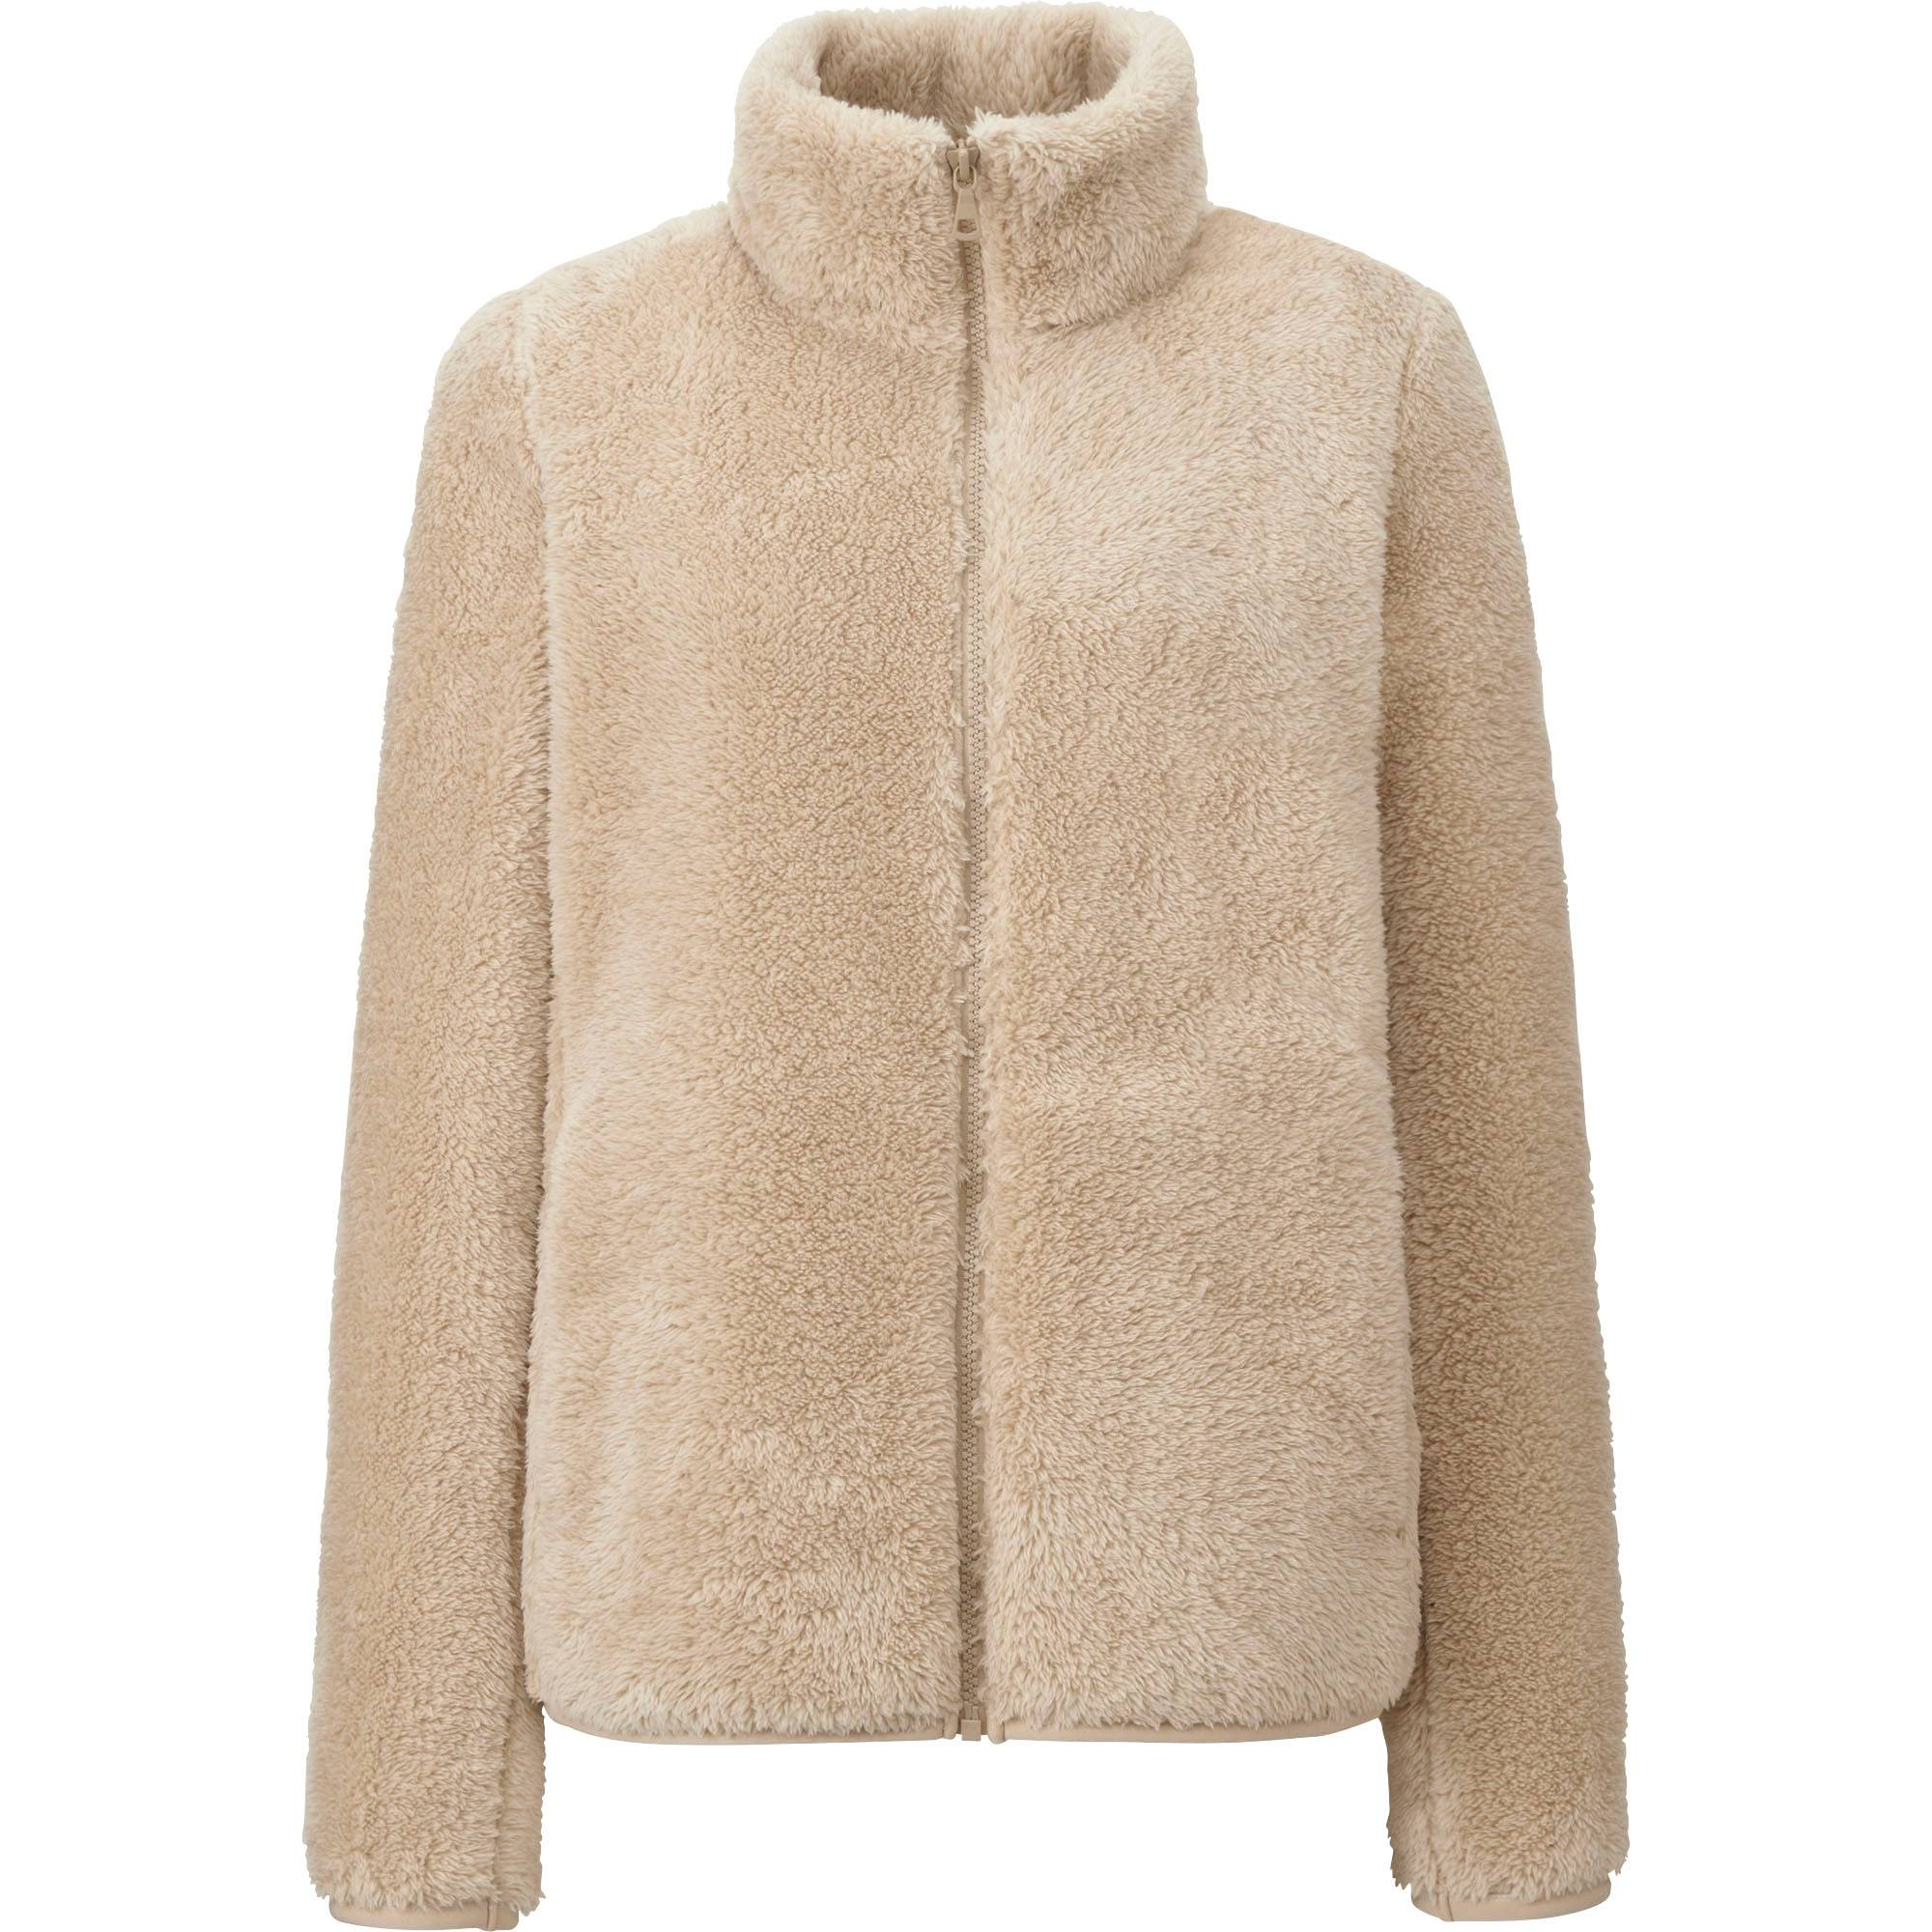 Fluffy Fleece Jacket